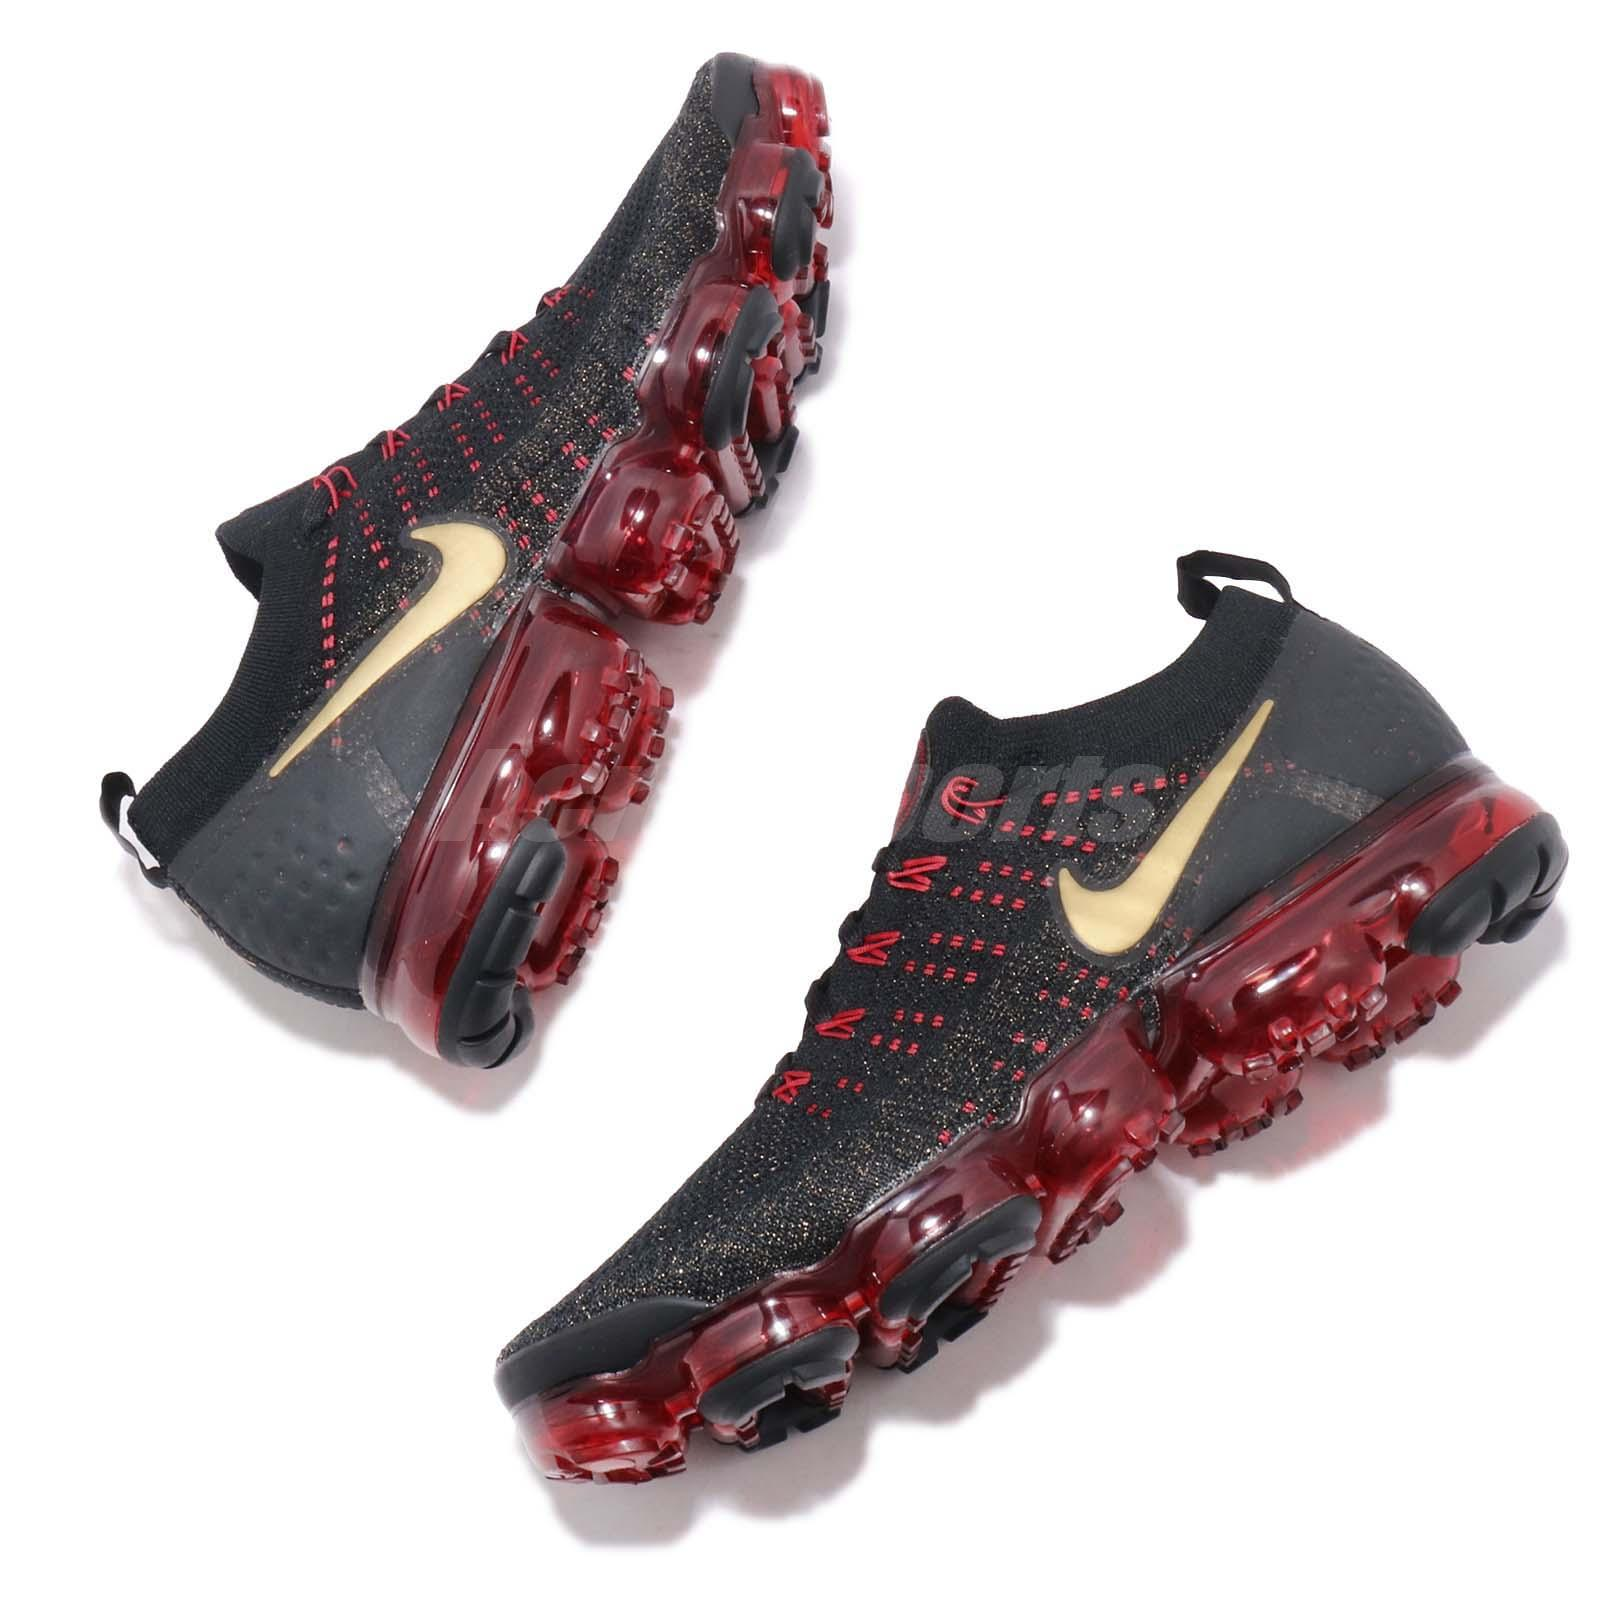 e7f868d6e2 Nike Air Vapormax FK 2 CNY Flyknit Chinese New Year Men Shoes ...